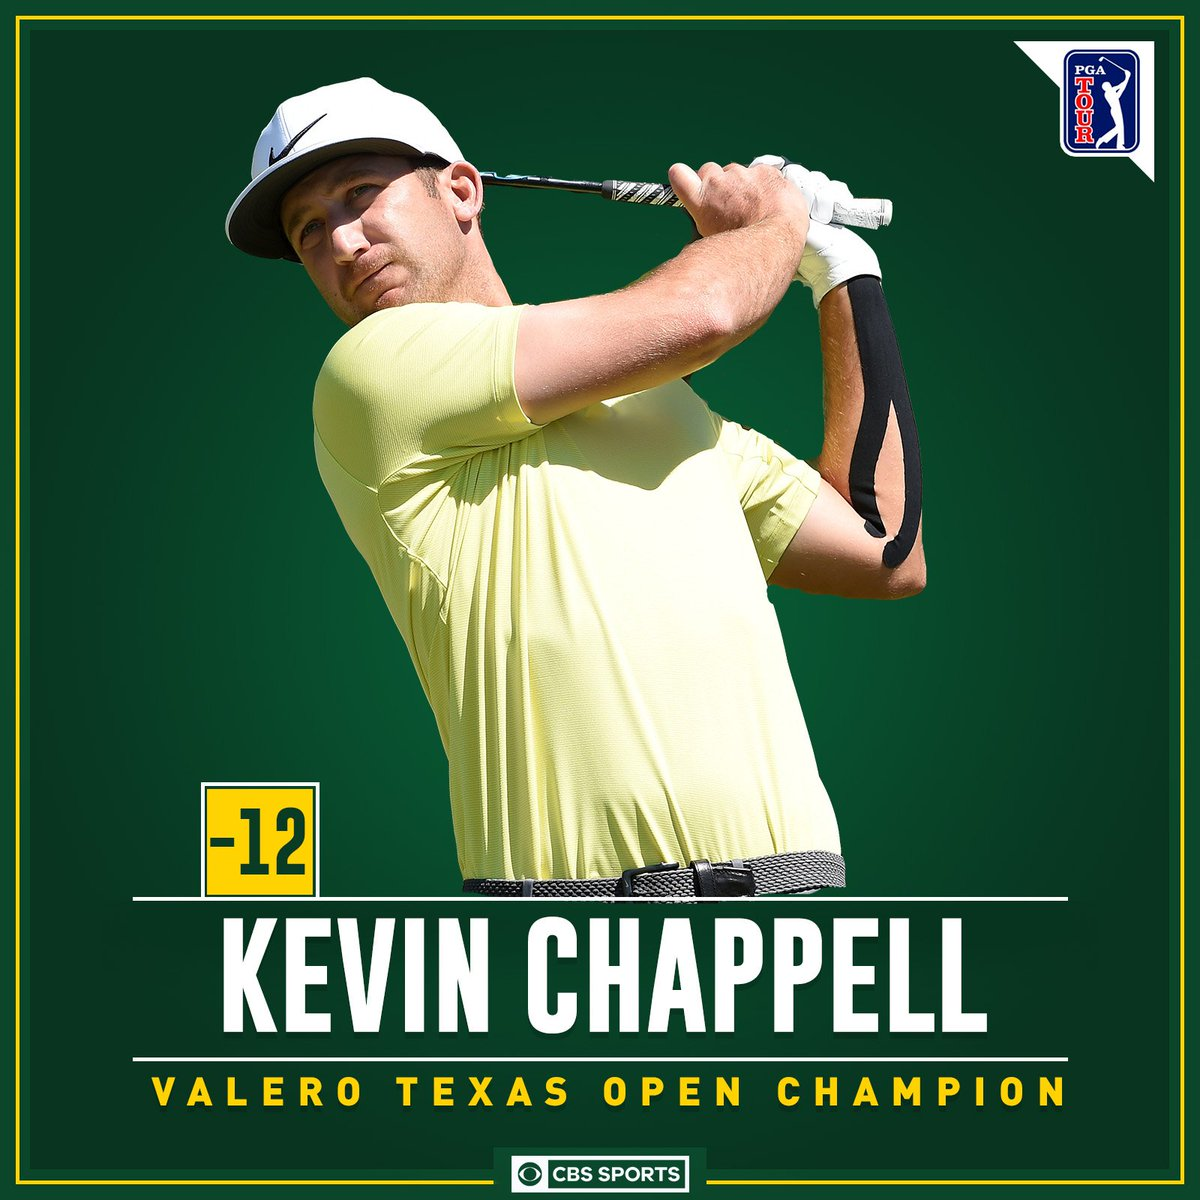 Kevin Chappell picked up his 1st PGA Tour victory at the @valerotxopen...